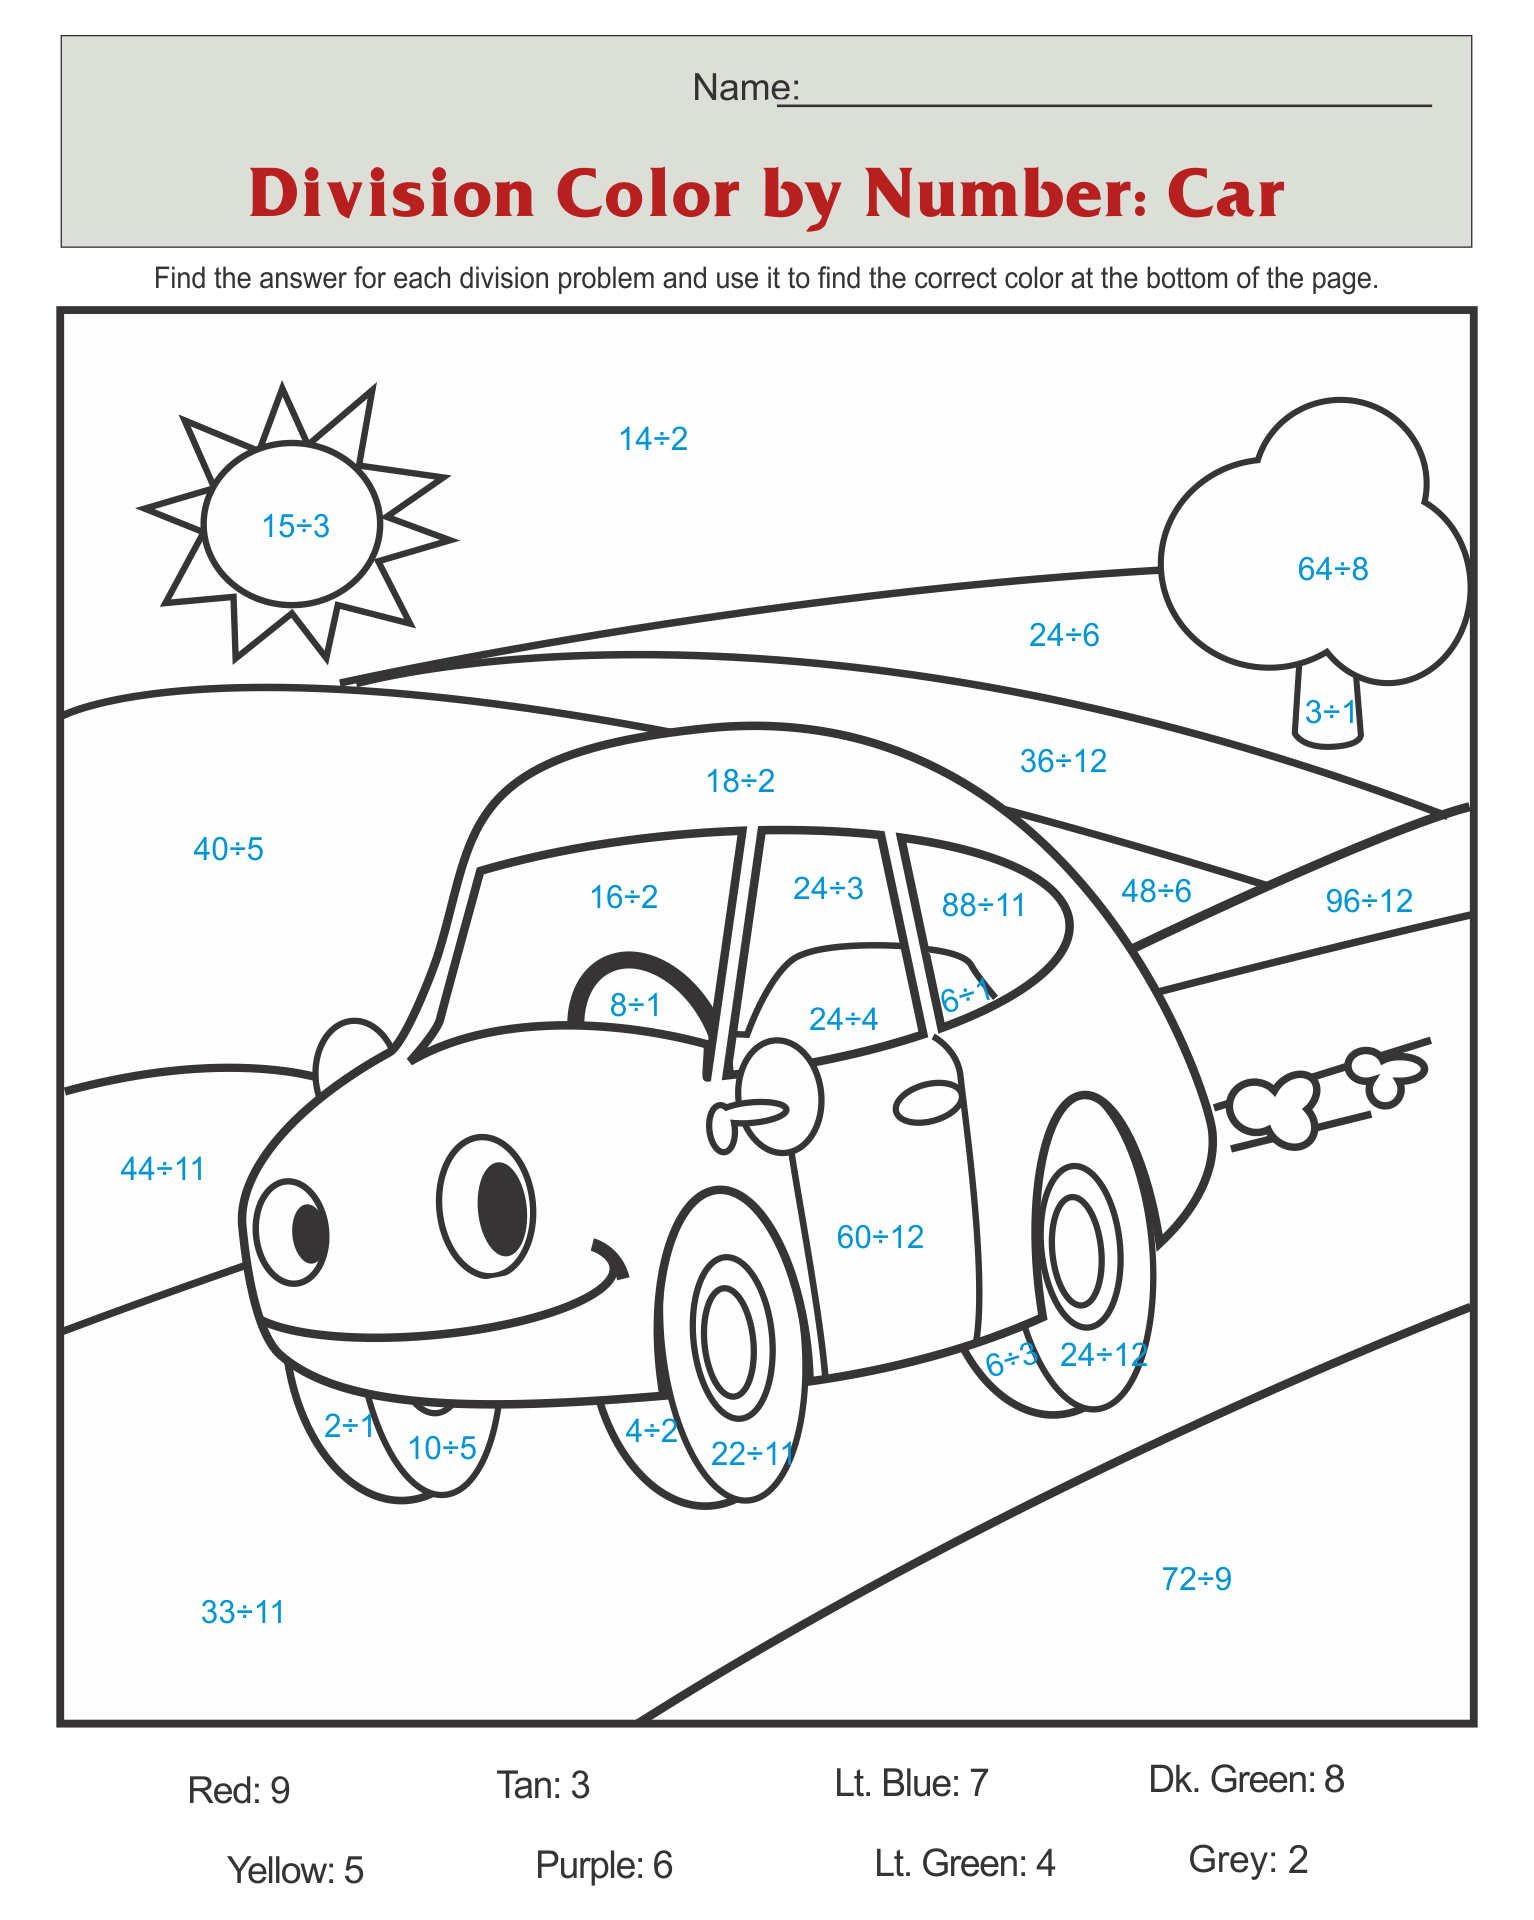 Car Color by Number Coloring Pages